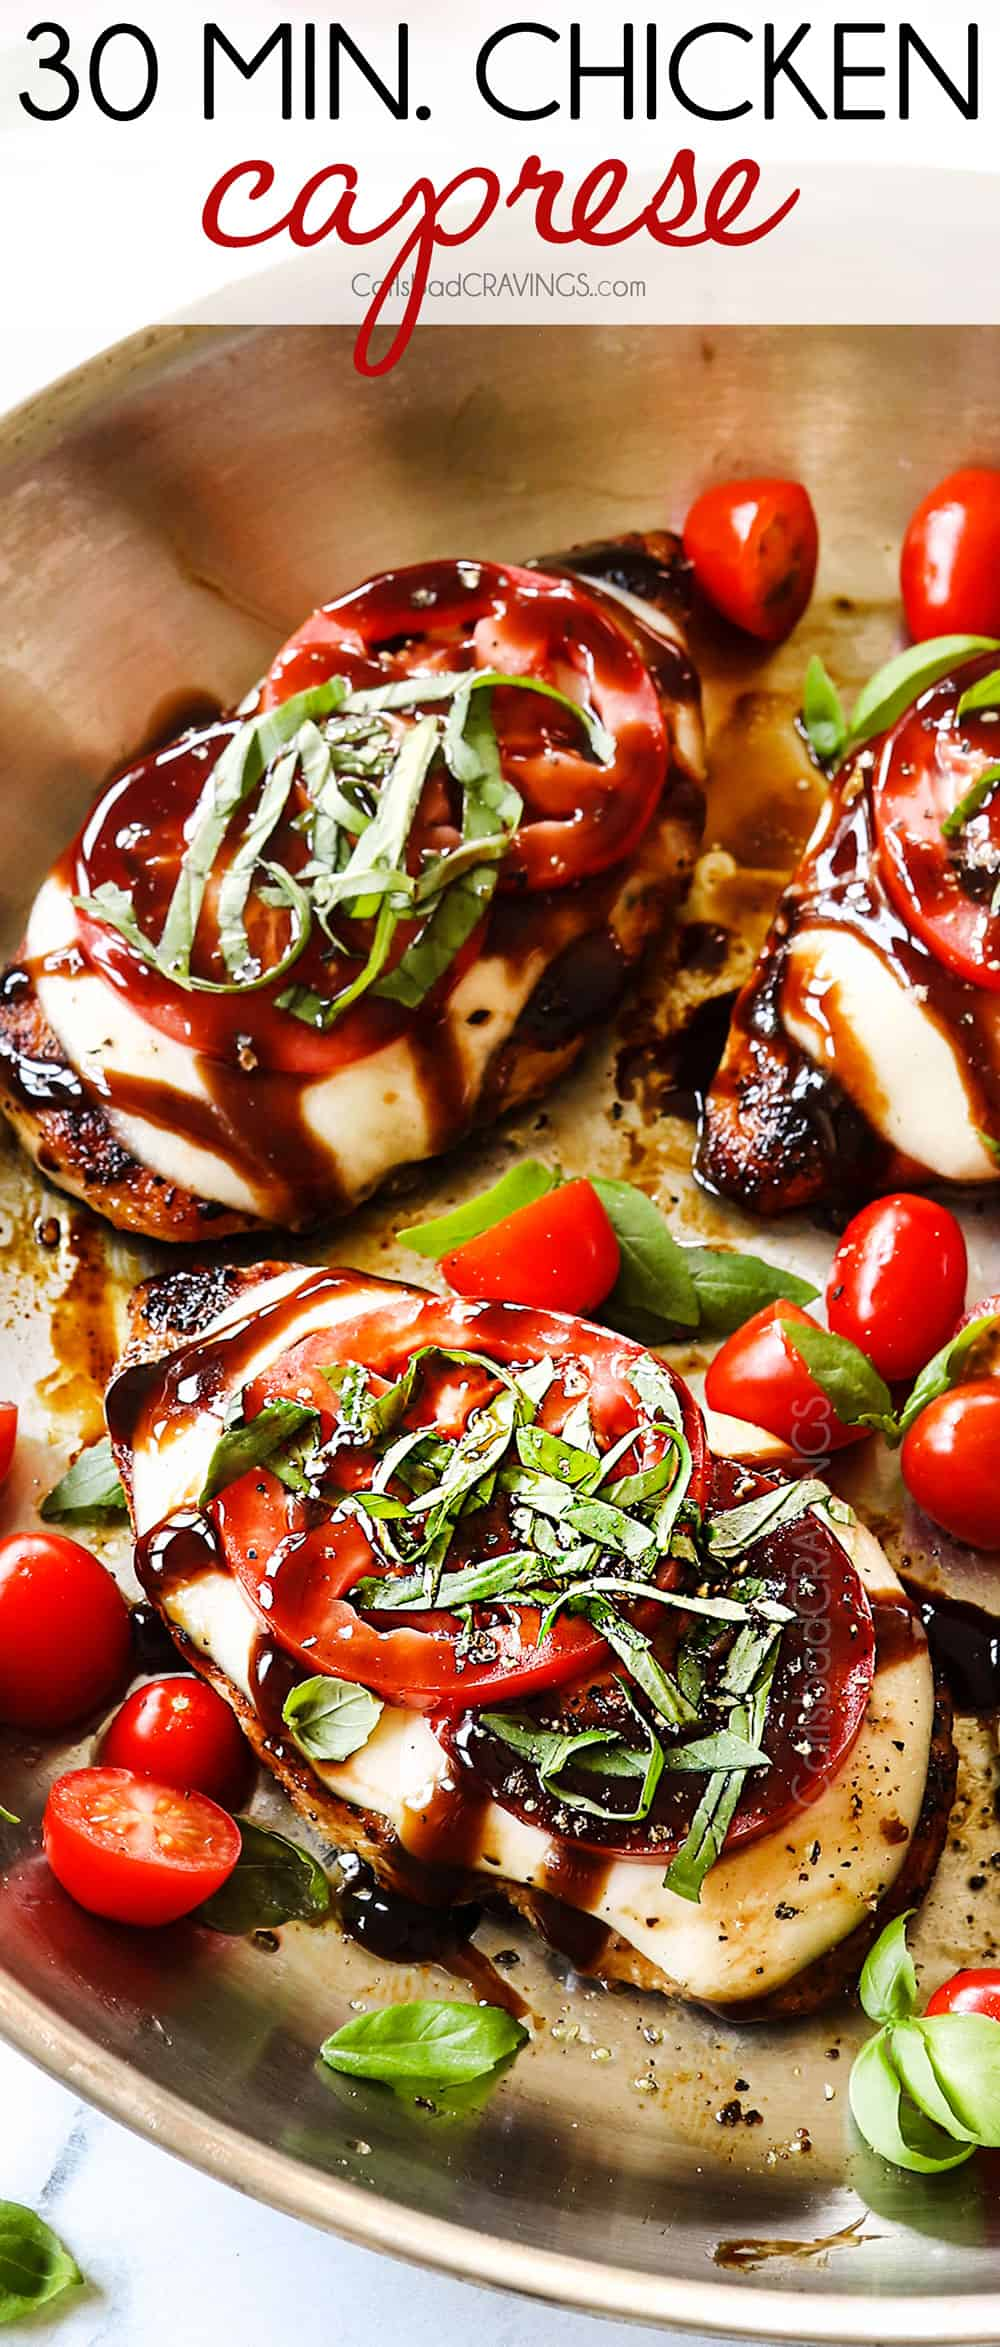 showing how to make chicken caprese by adding basil to chicken in the skillet